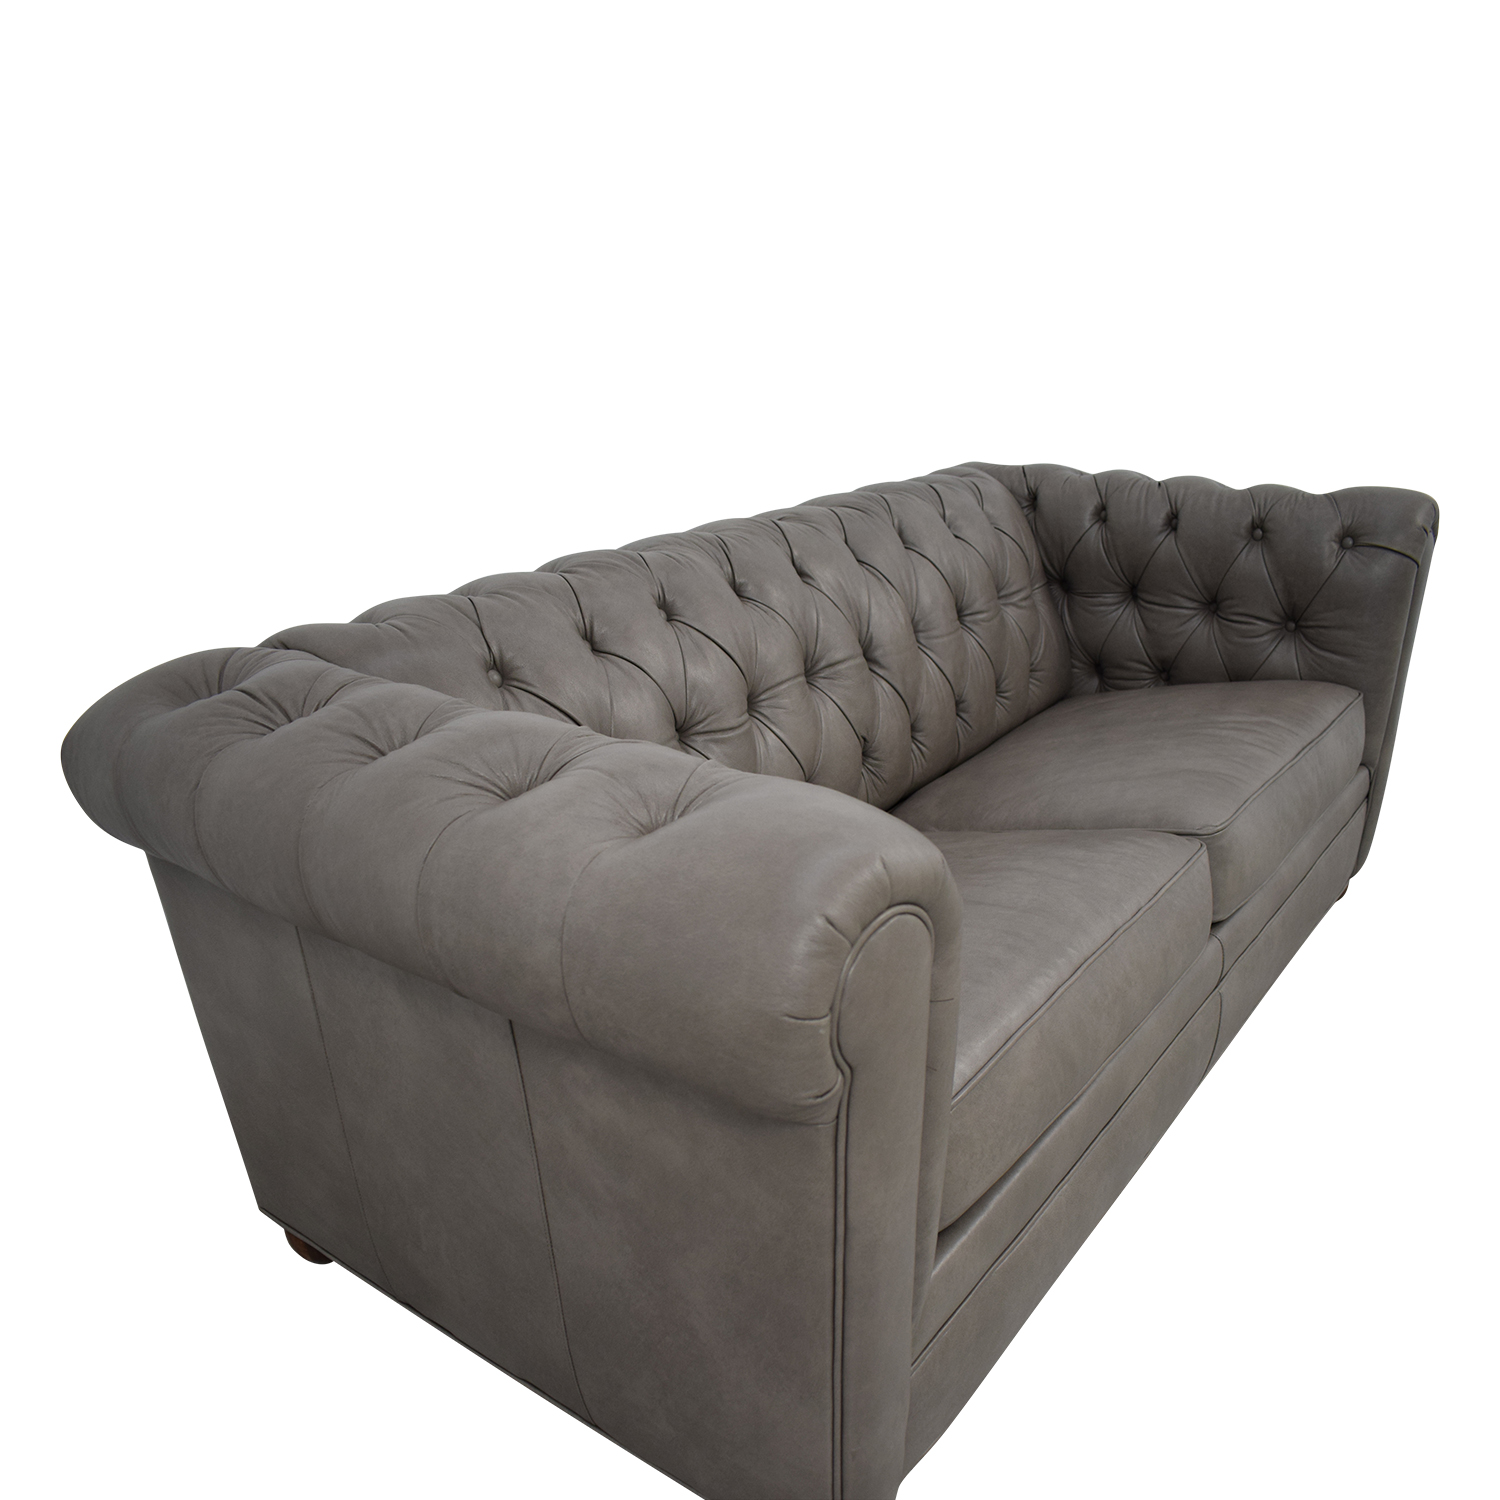 shop Club Furniture Club Furniture Leather Chesterfield Sleeper Sofa online